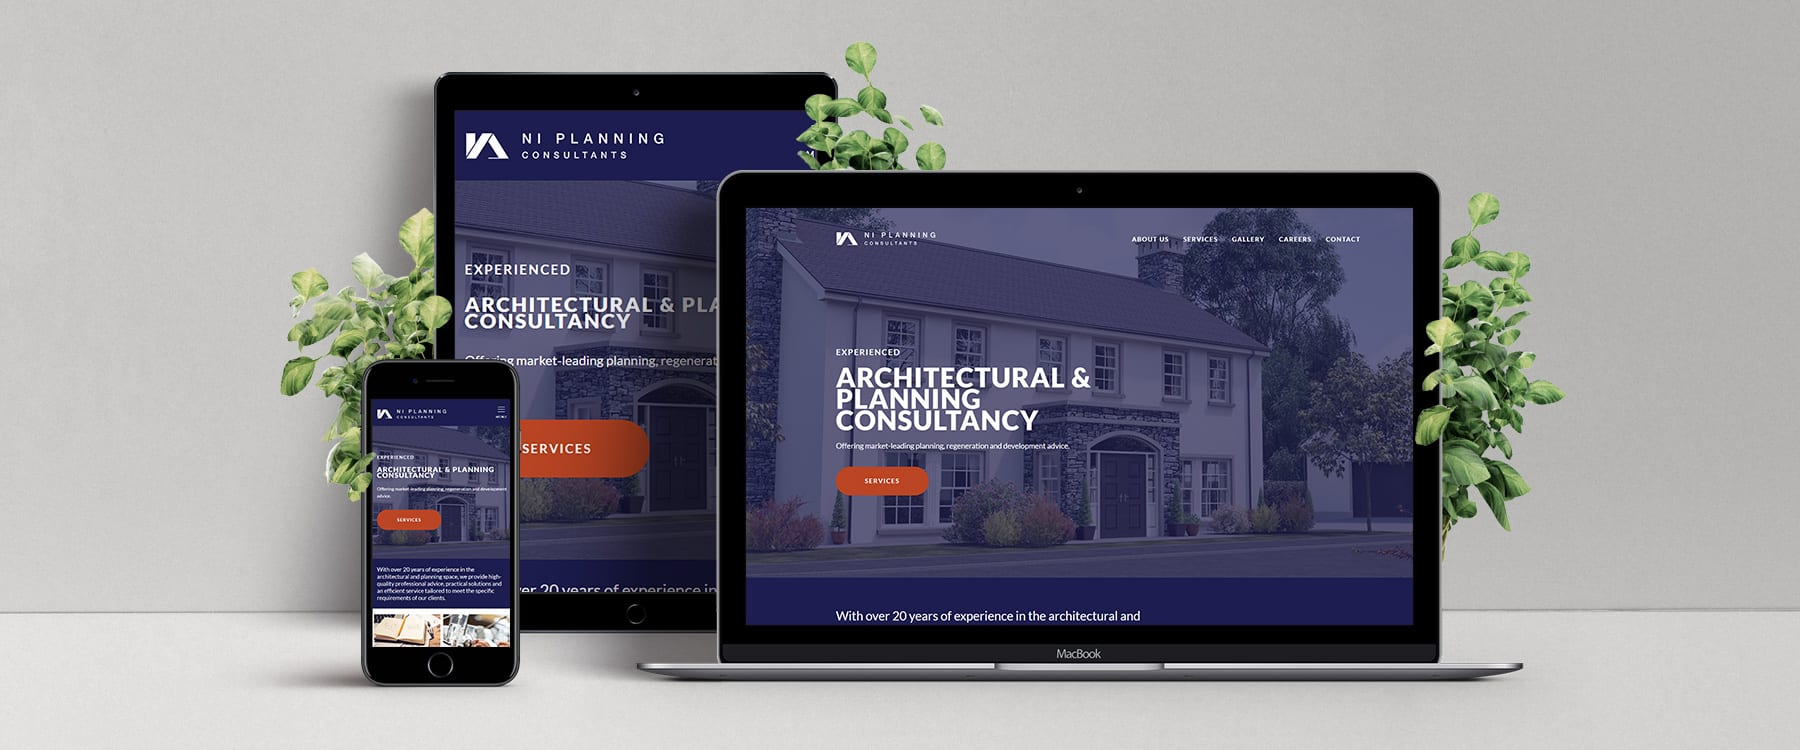 NI Planning Consultants Launch New Professional Website Image